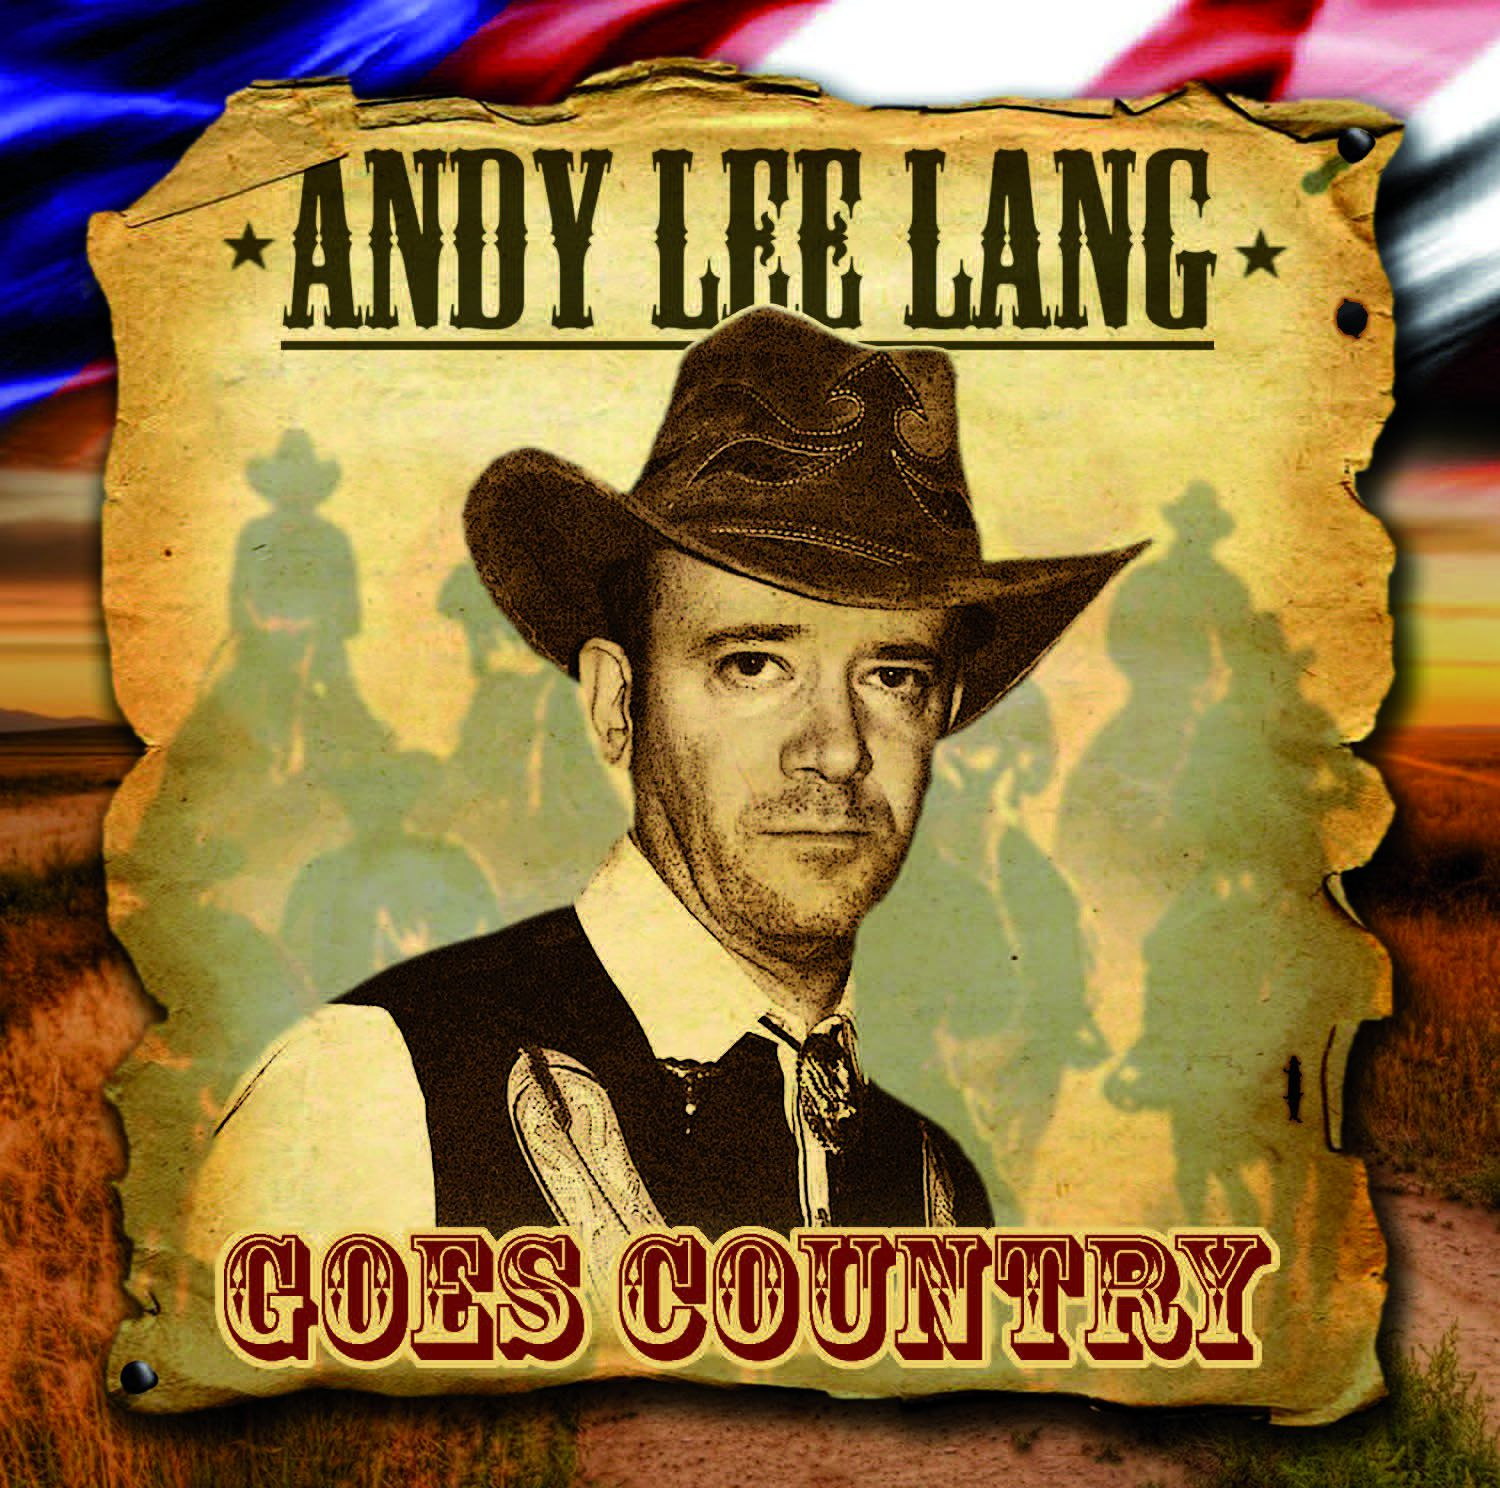 Andy Lee Lang goes Country -  © Archiv Theater Akzent